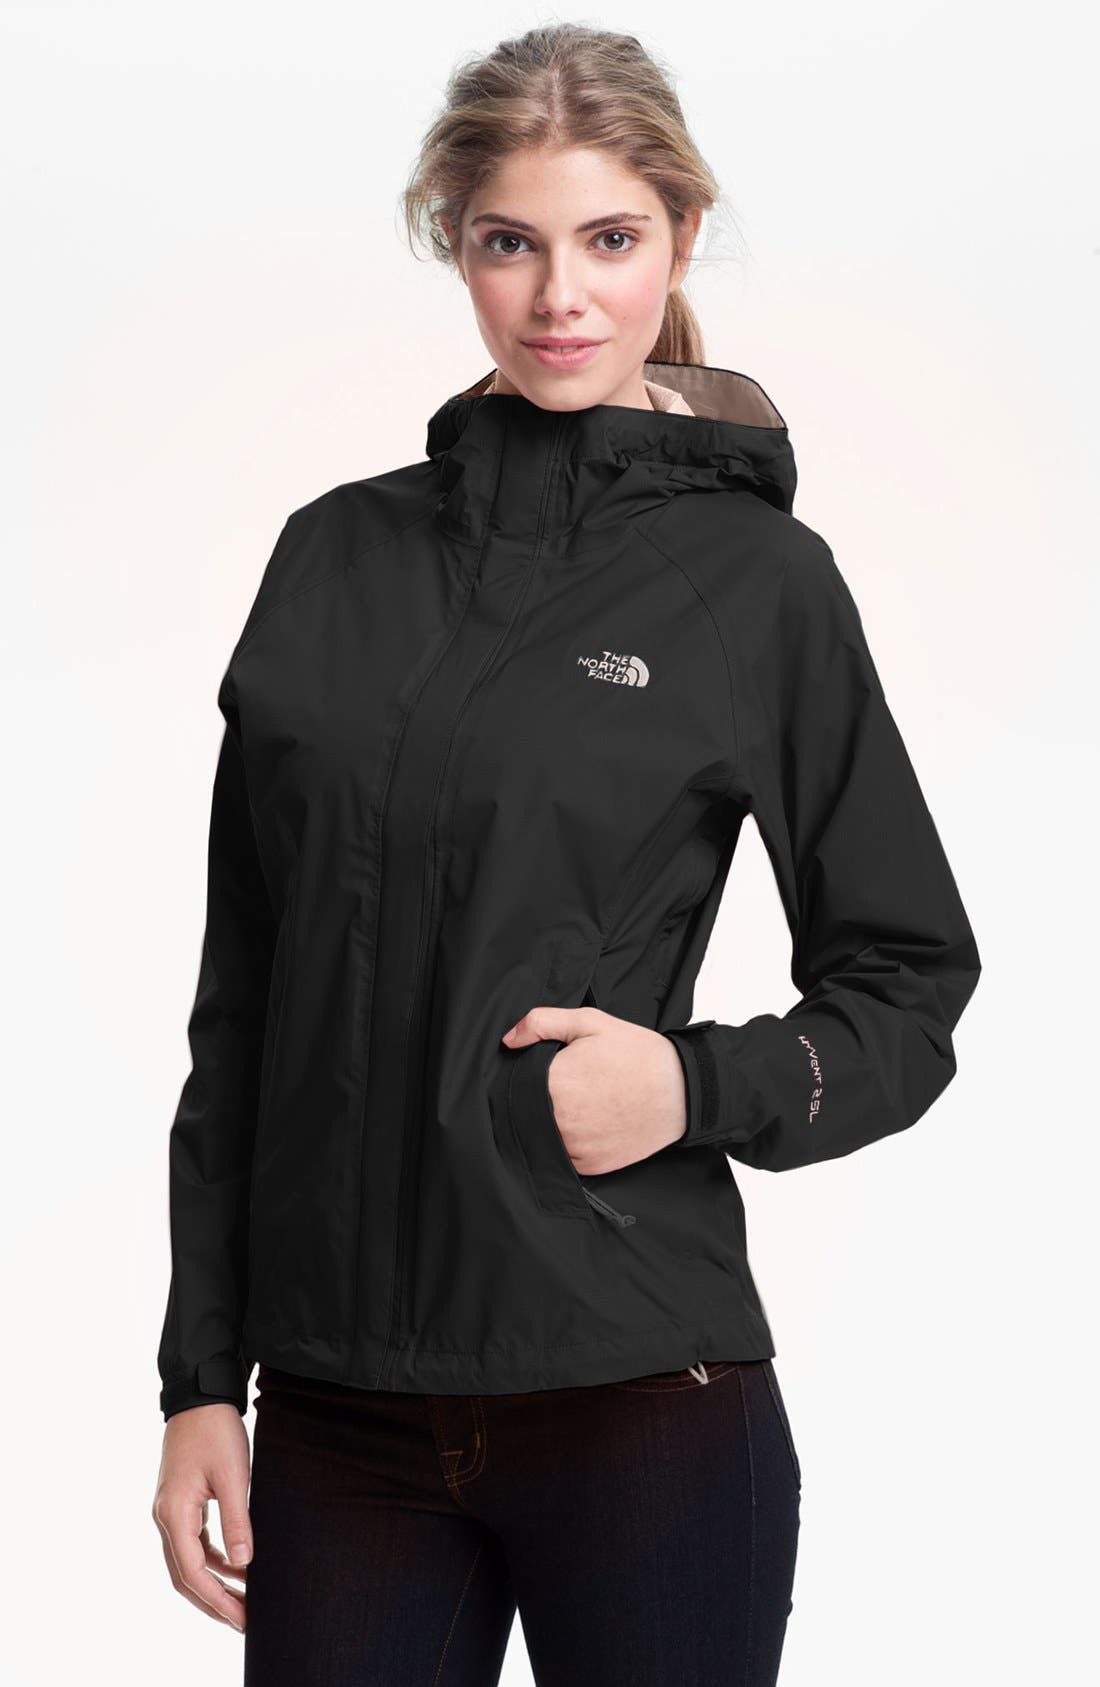 Main Image - The North Face 'Venture' Waterproof Jacket